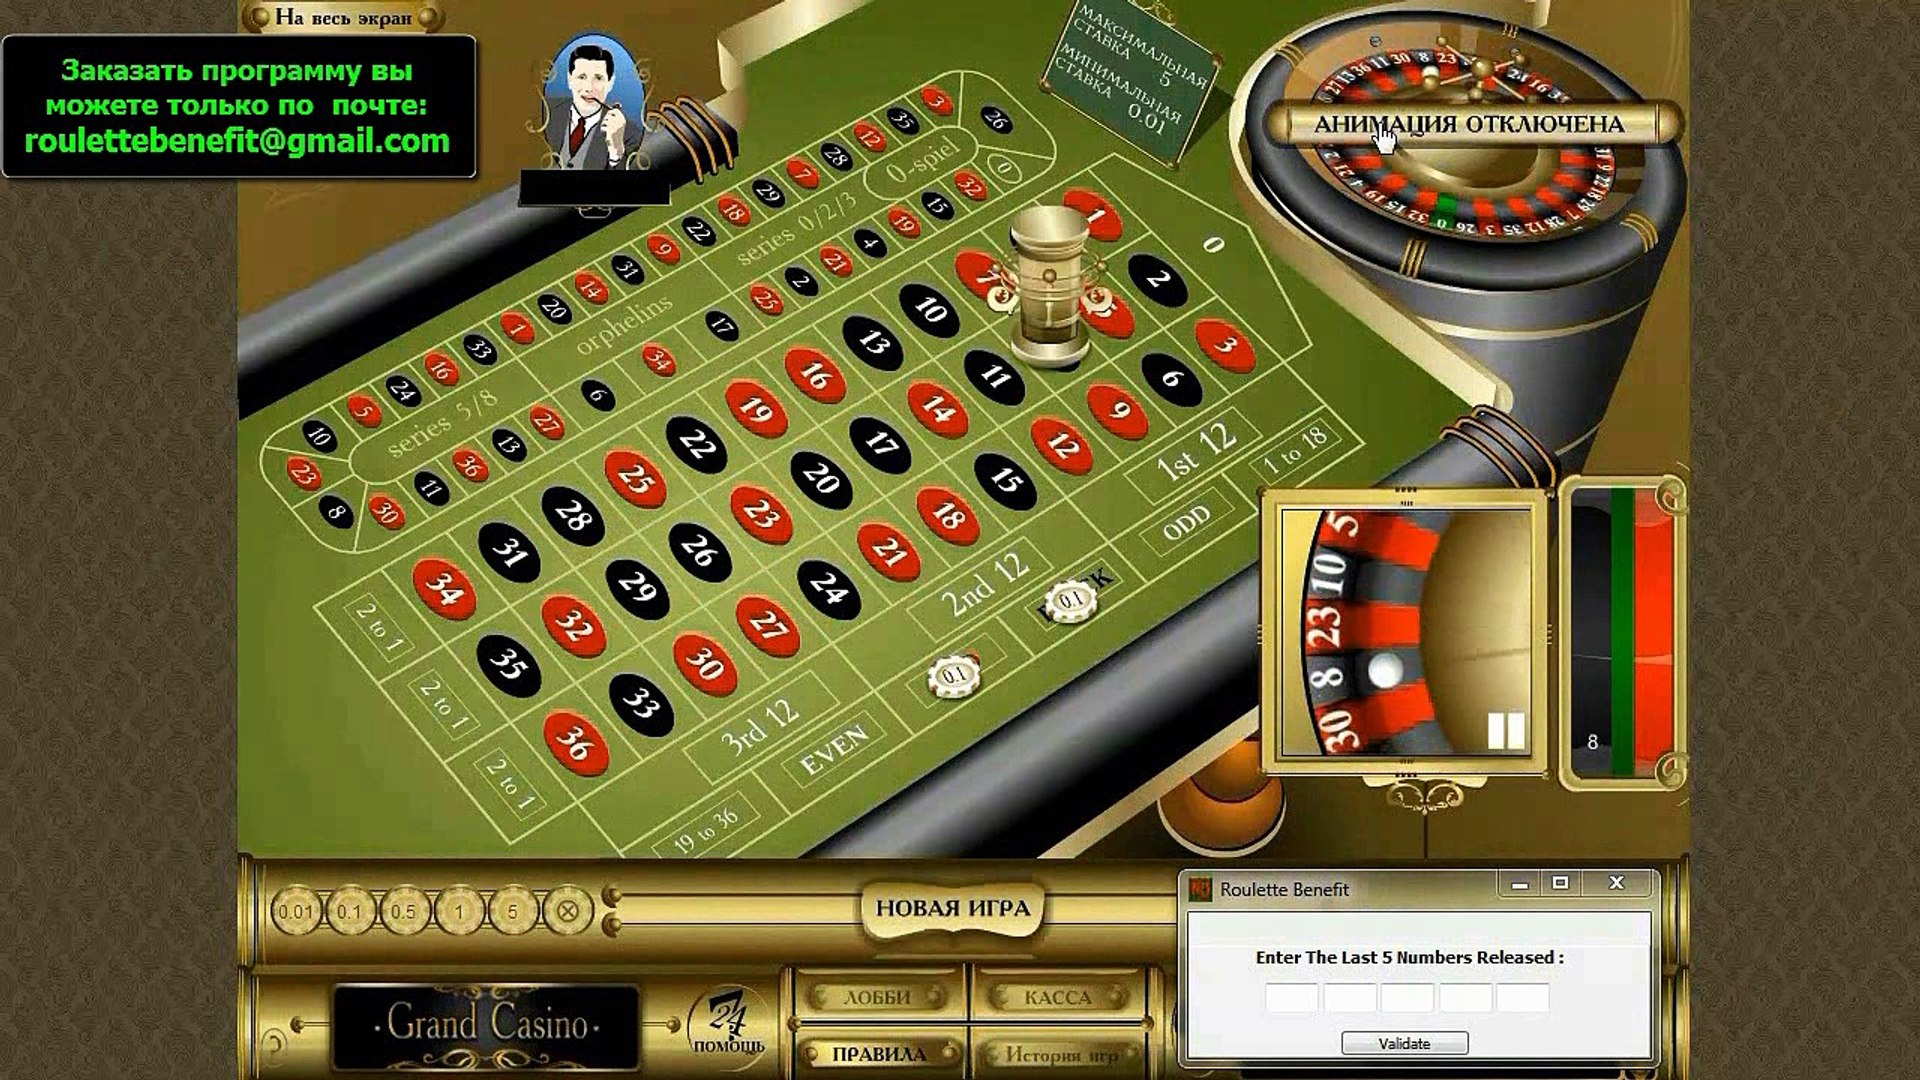 Программа для взлома интернет Big Azart Casino